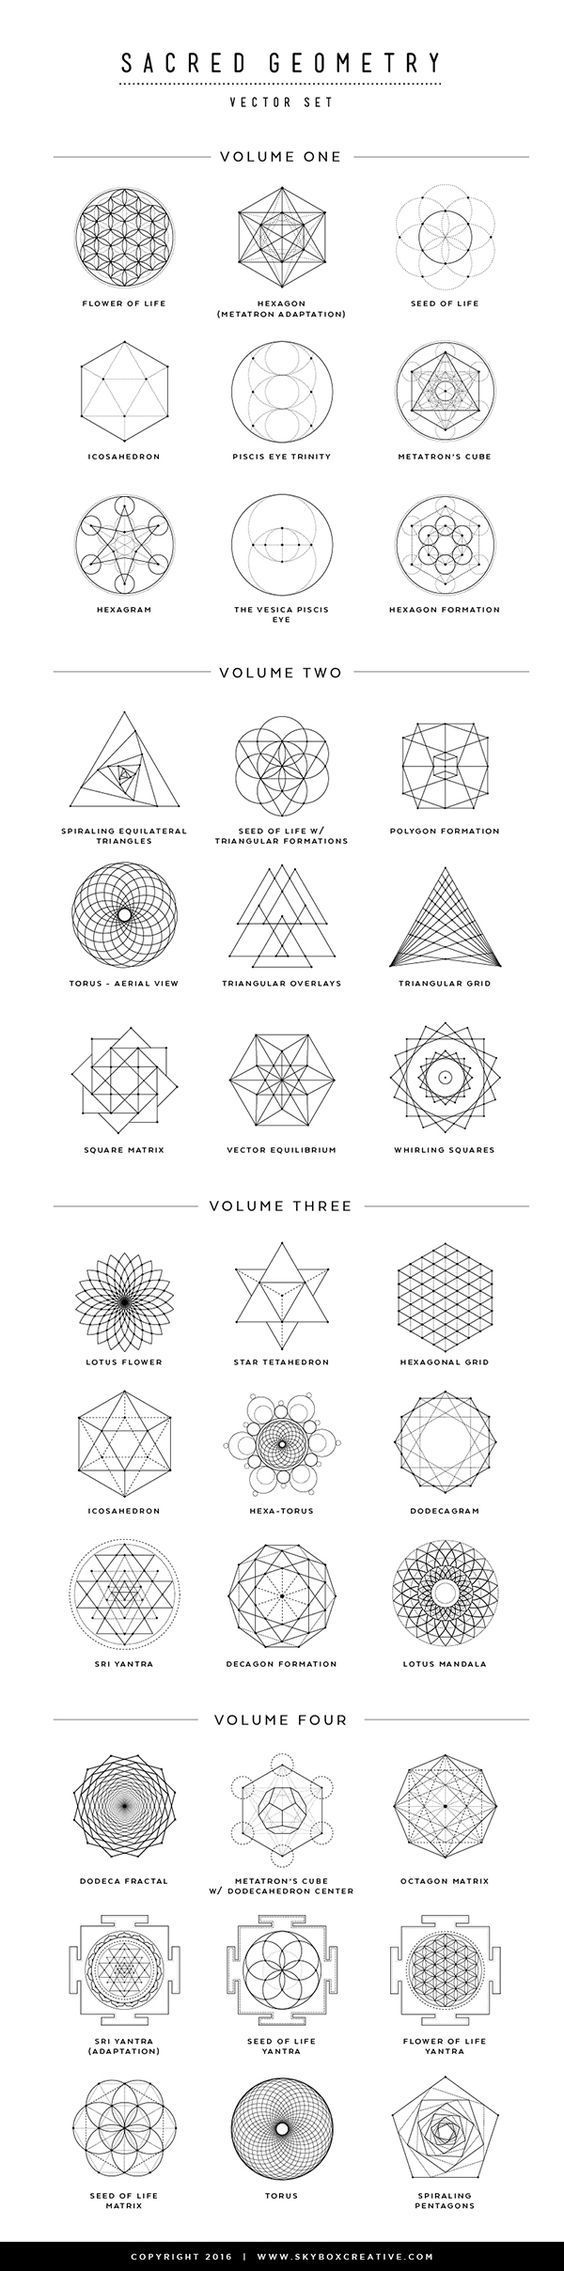 564x2271 36 Sacred Geometry Vectors And Their Meanings In 2018 Sacred